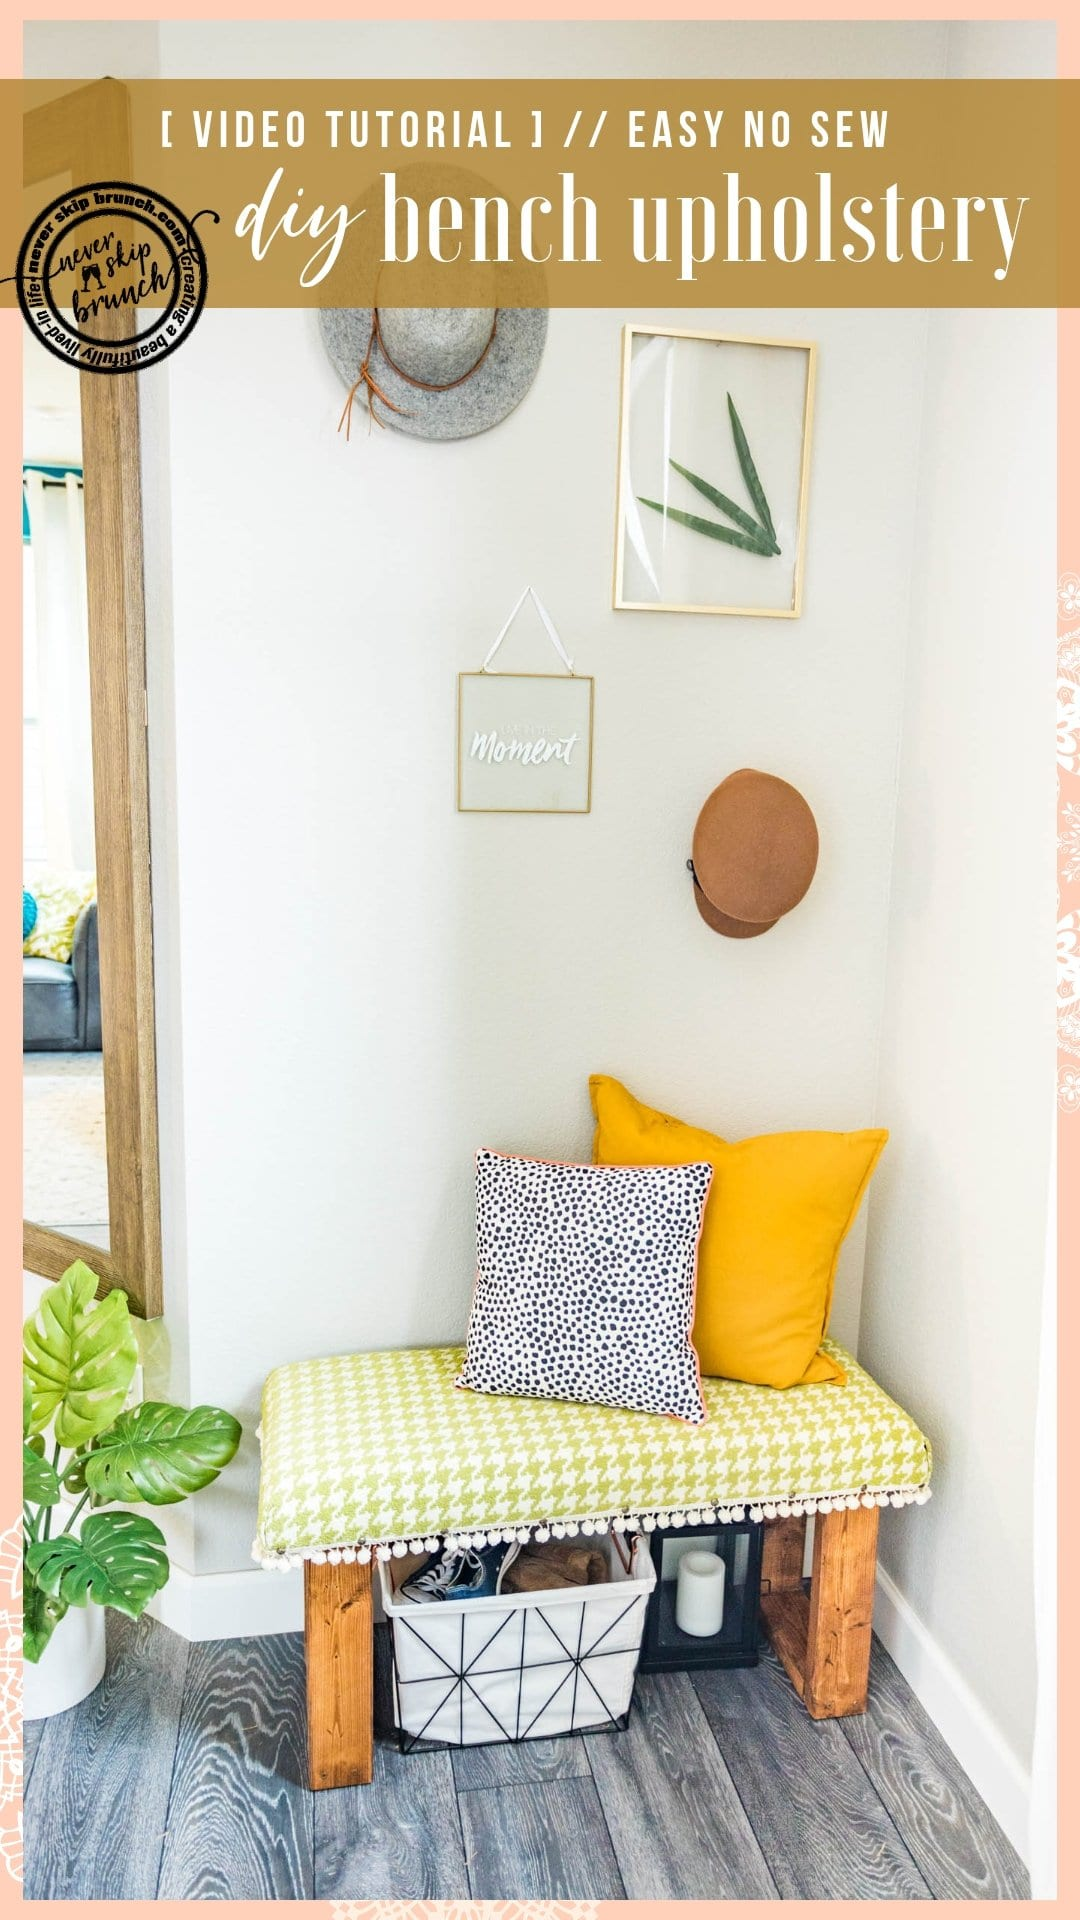 SO EASY! A great video tutorial for making a DIY Upholstery Bench that's no sew | This how to will teach you bench upholstery diy even if you're a newbie | Never Skip Brunch by Cara Newhart | #home #decor #upholstery #furniture